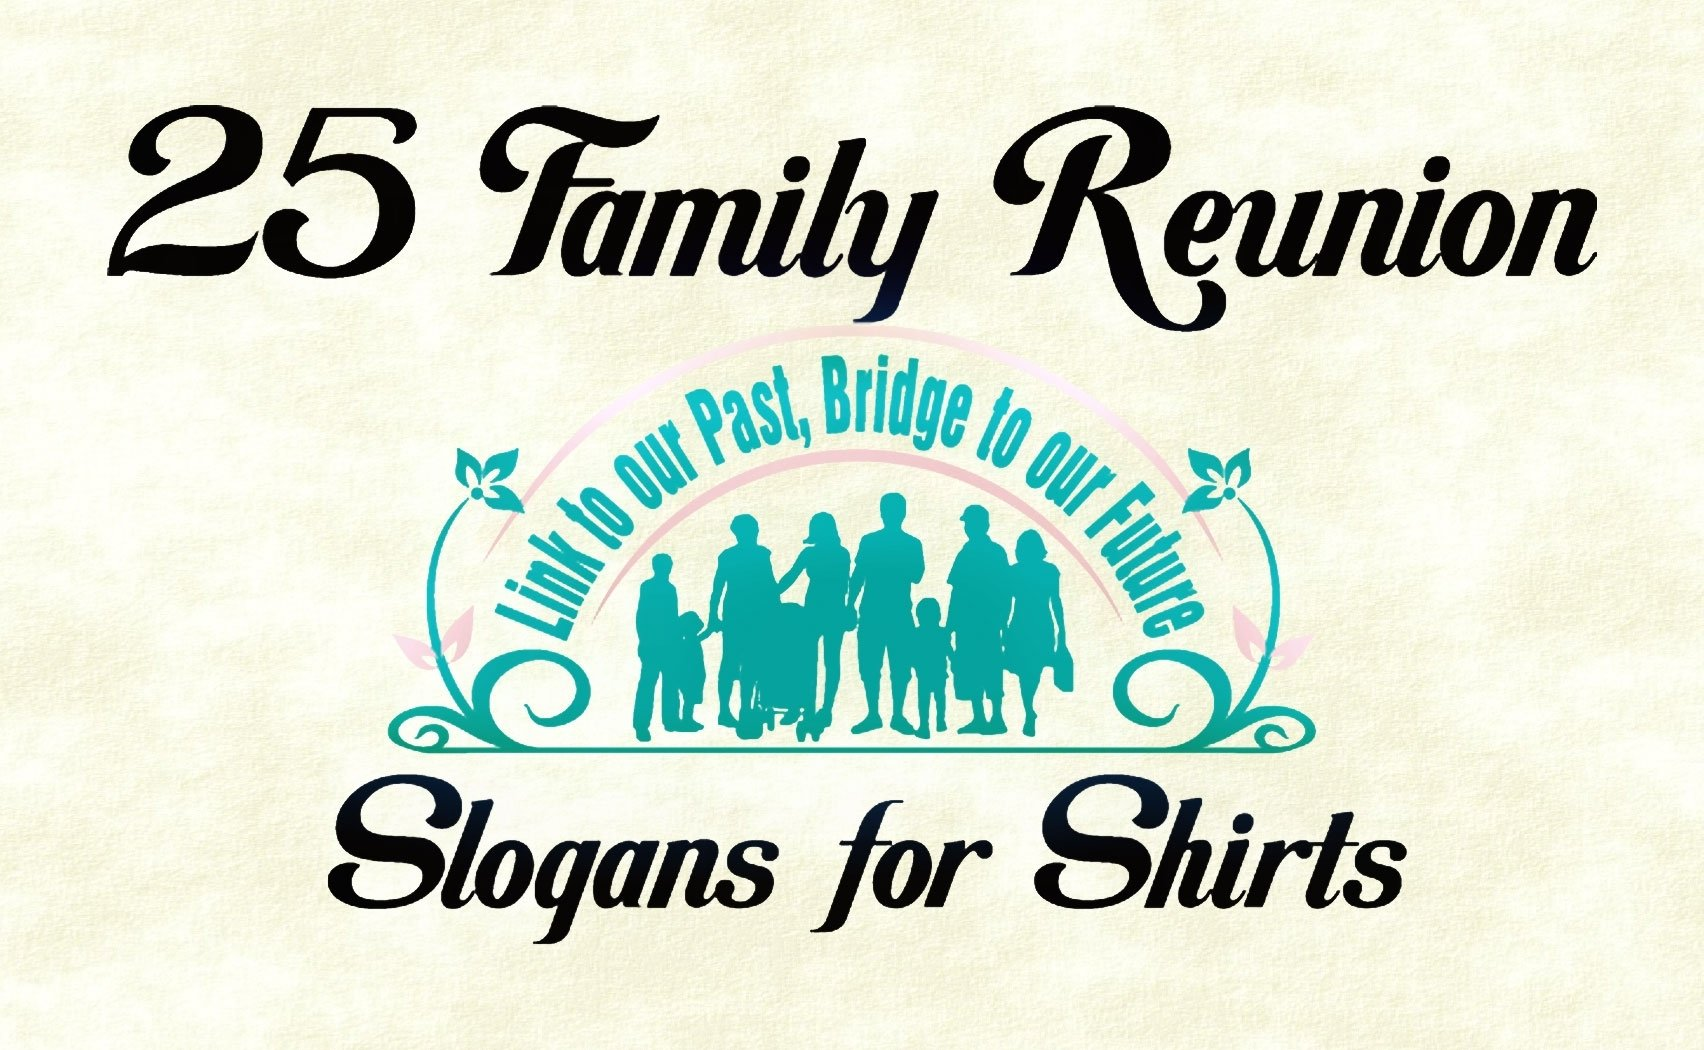 10 Ideal Family Reunion T Shirt Ideas iza design blog25 favorite family reunion slogans for t shirts